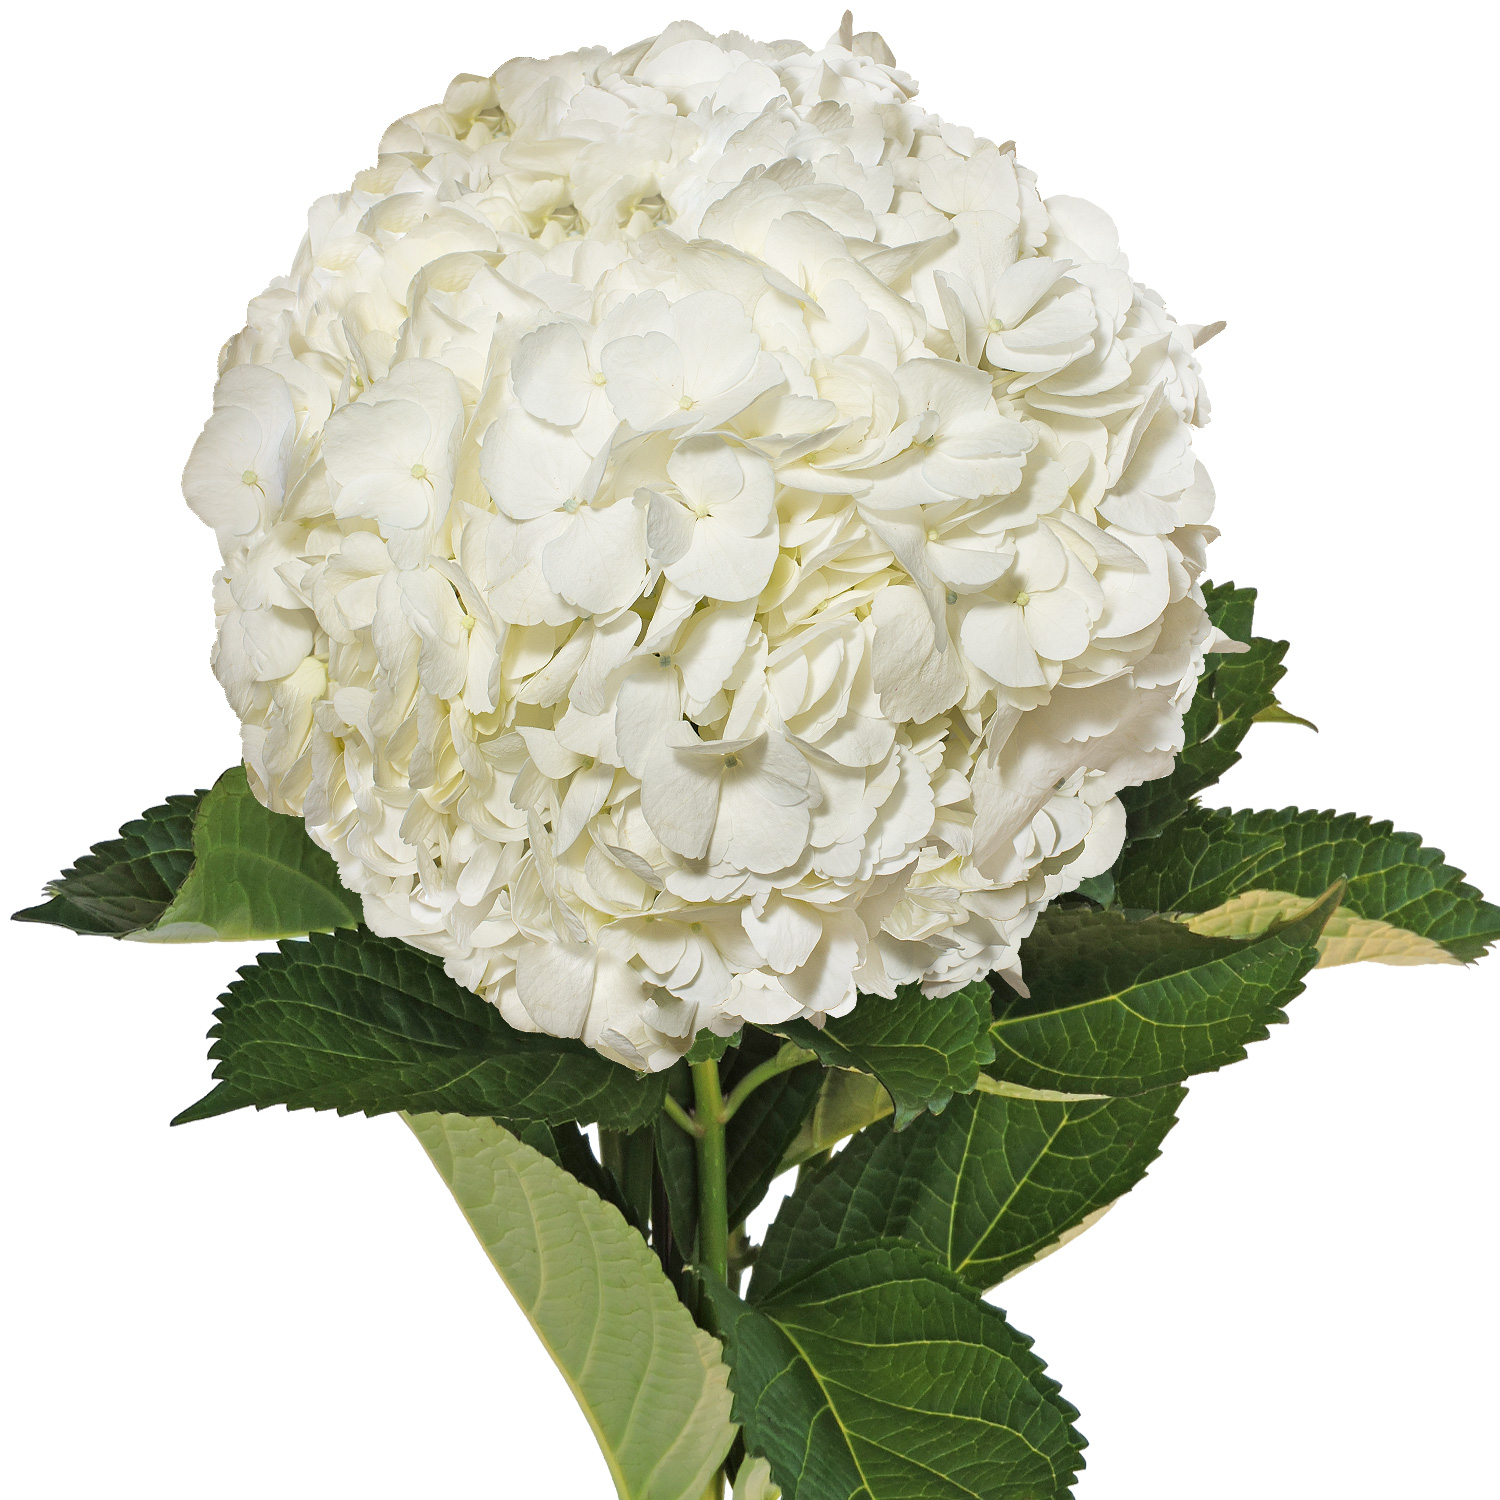 Natural Fresh Flowers White Hydrangeas 40 Stems Walmart Com